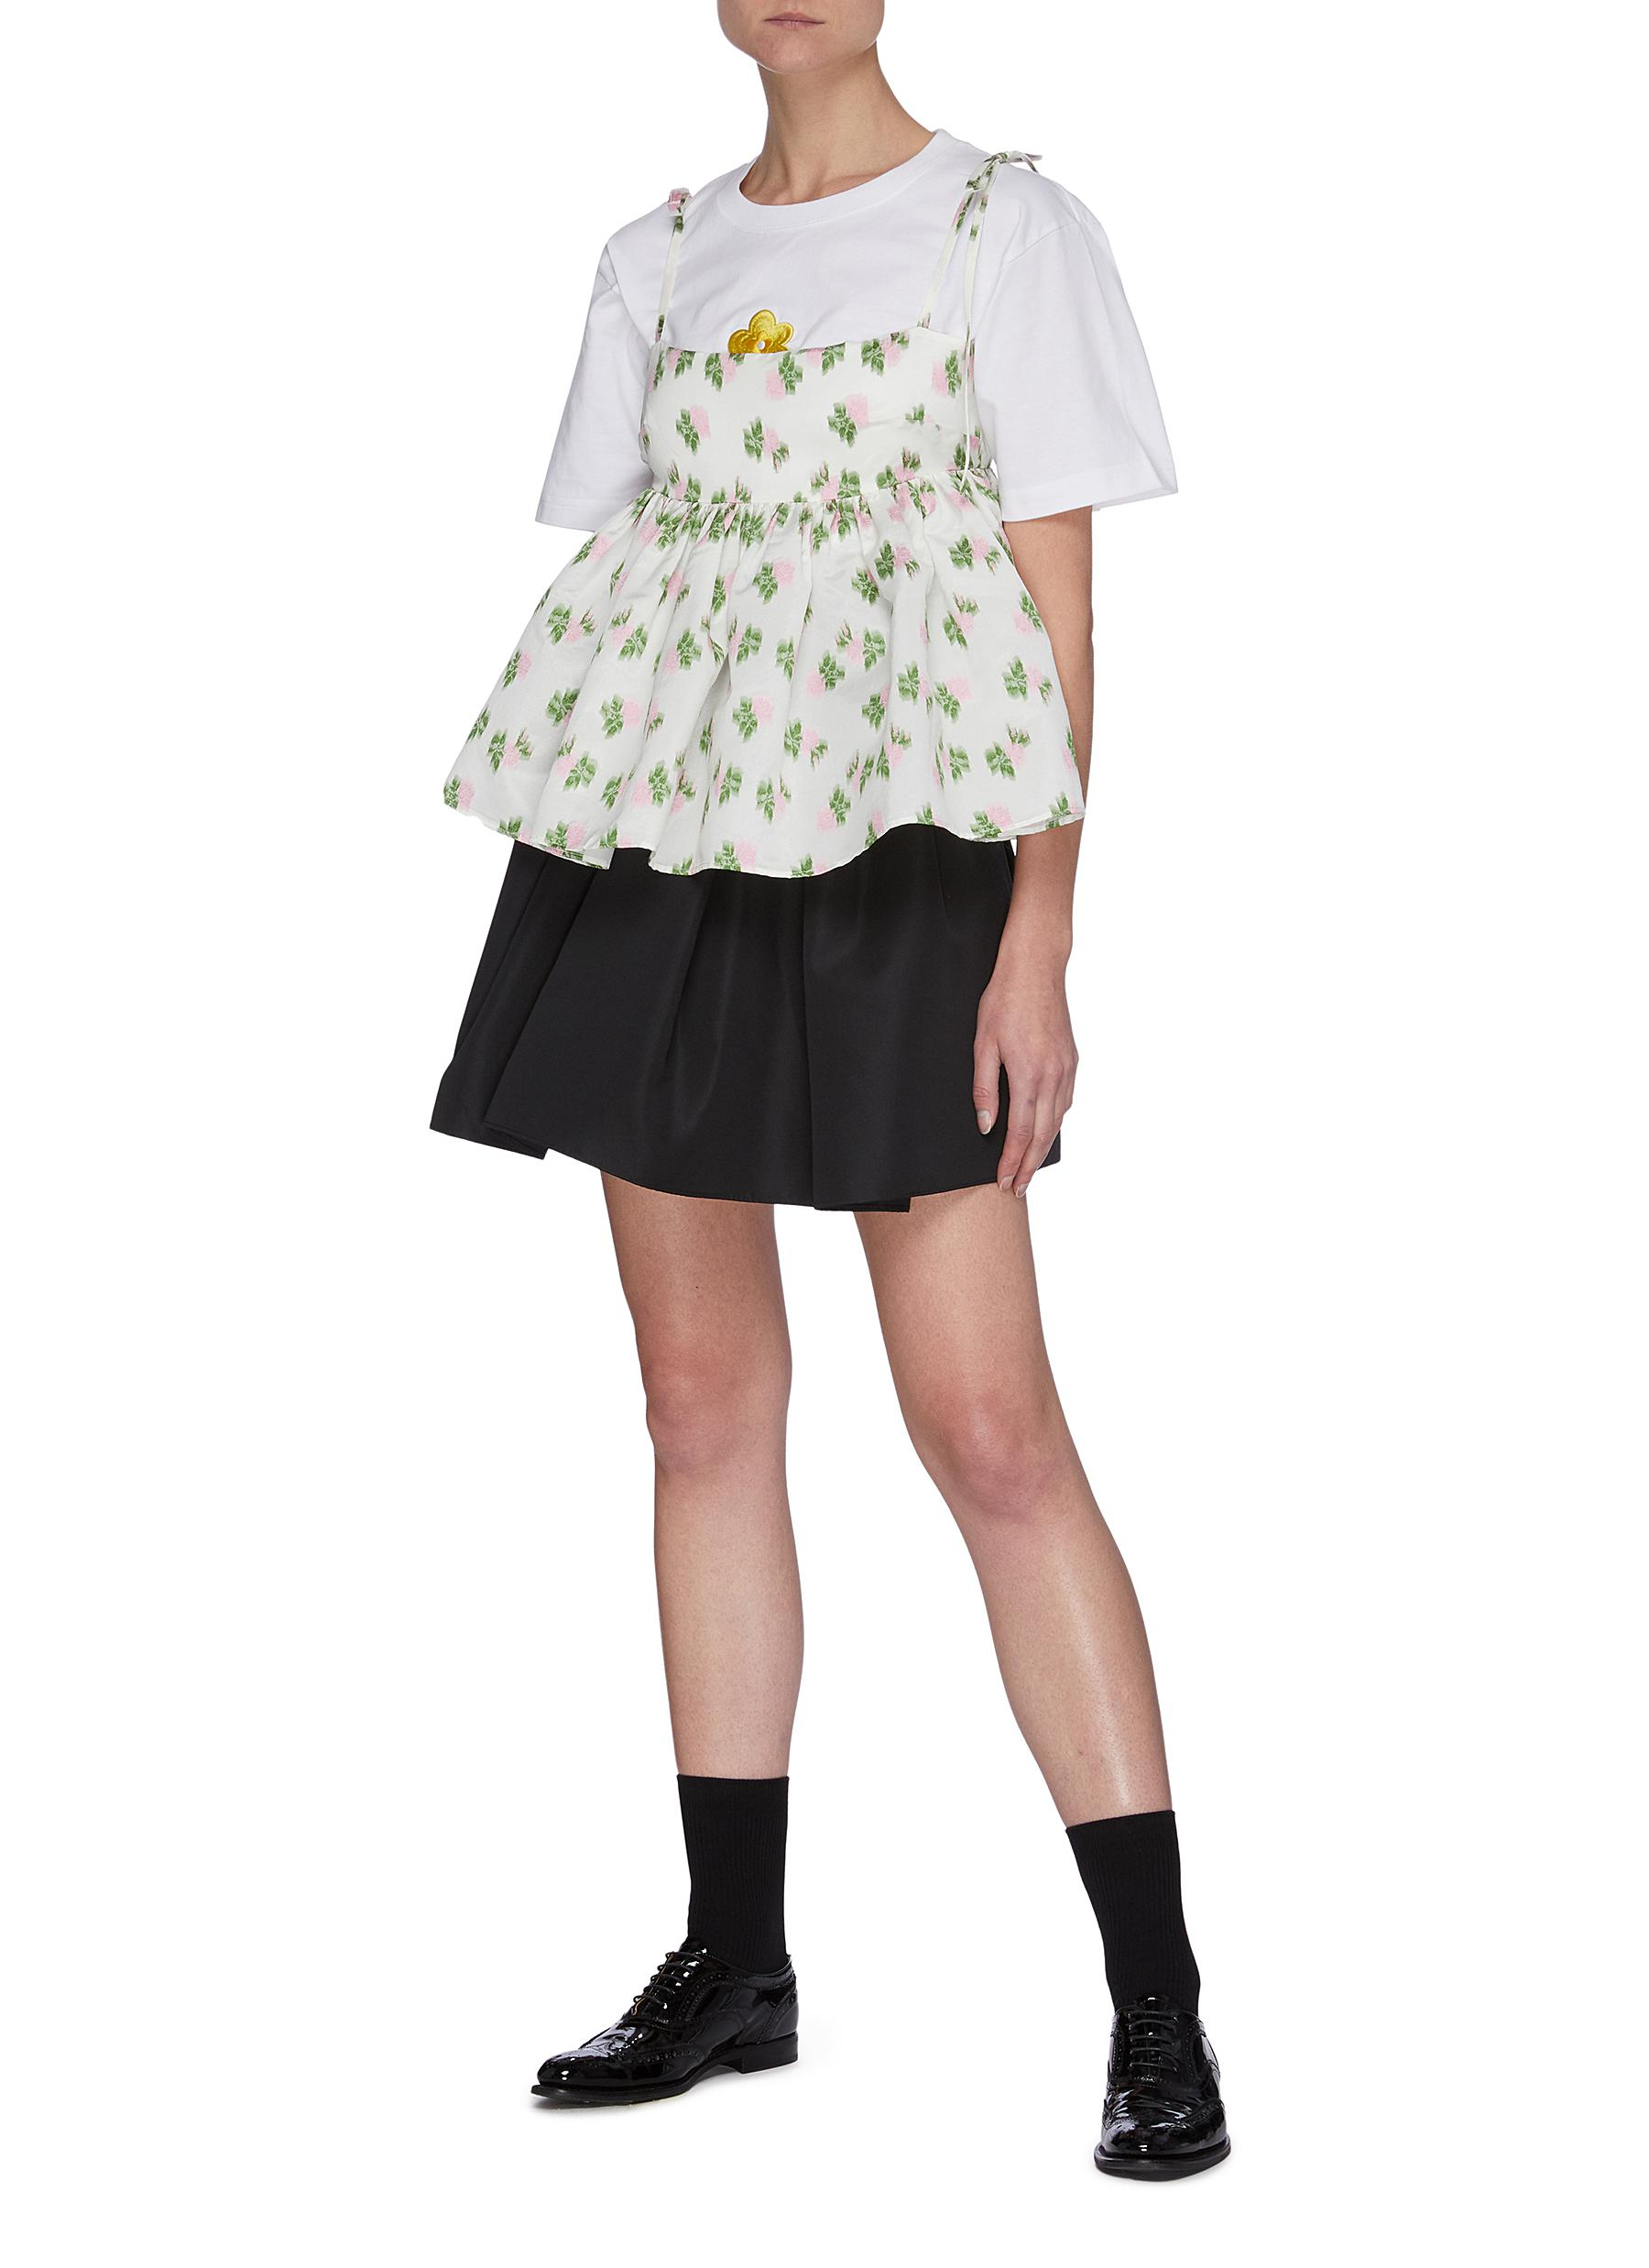 SHUSHU-TONG T-shirts EMBROIDERED FLOWER CREWNECK T-SHIRT